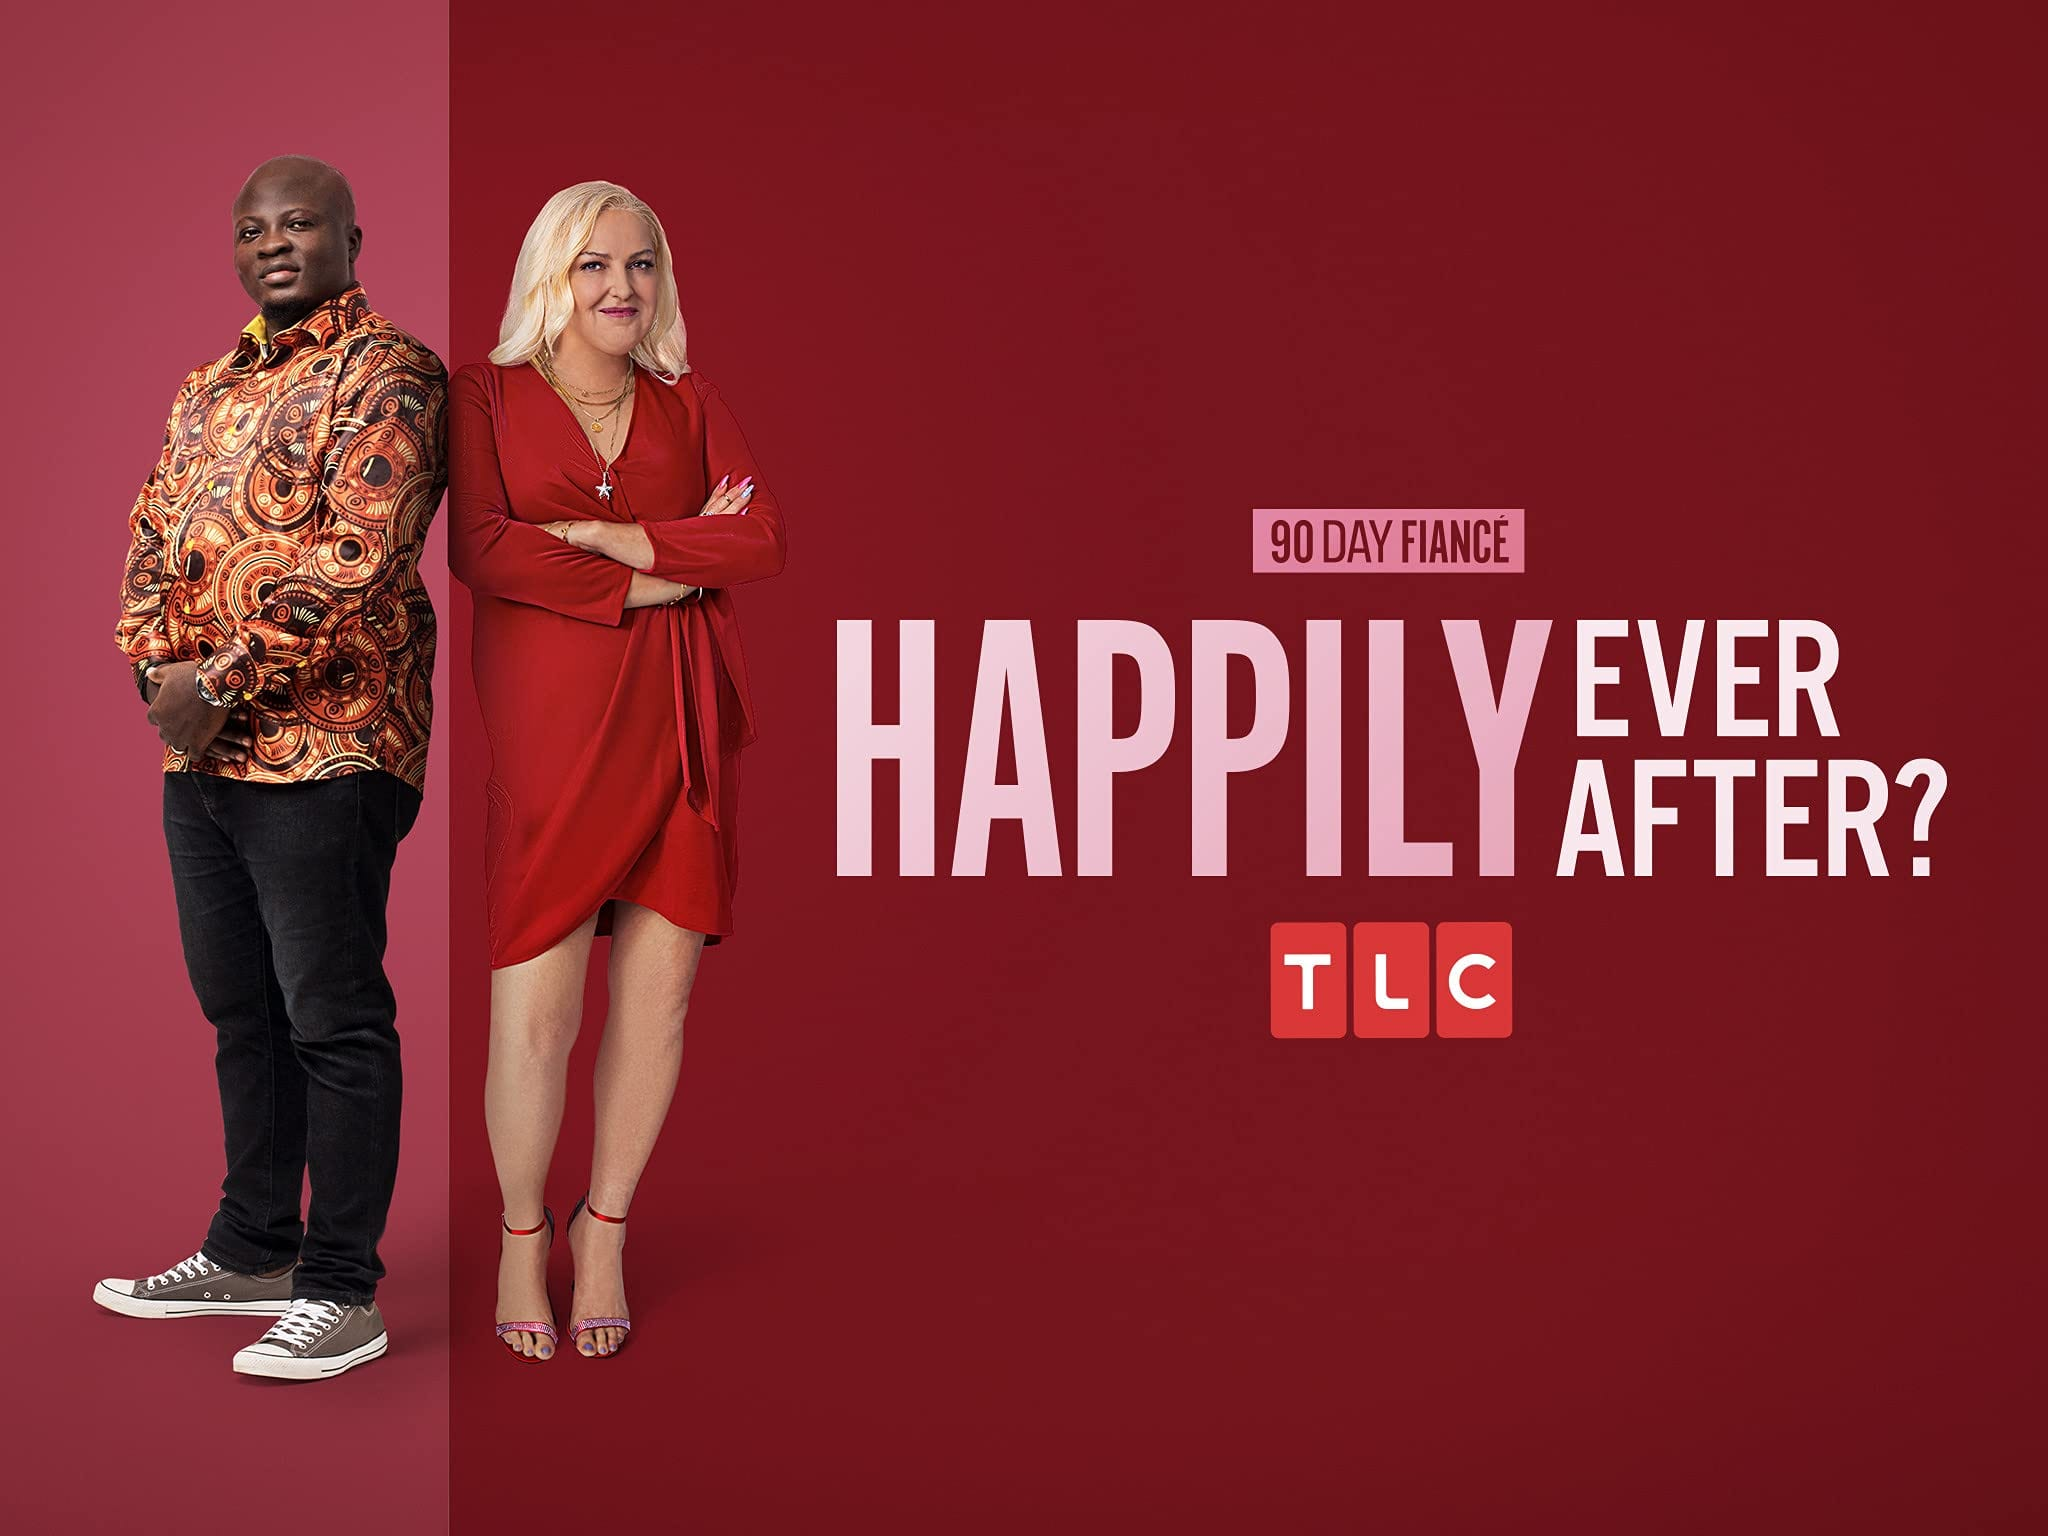 90 day fiance happily ever after season 6